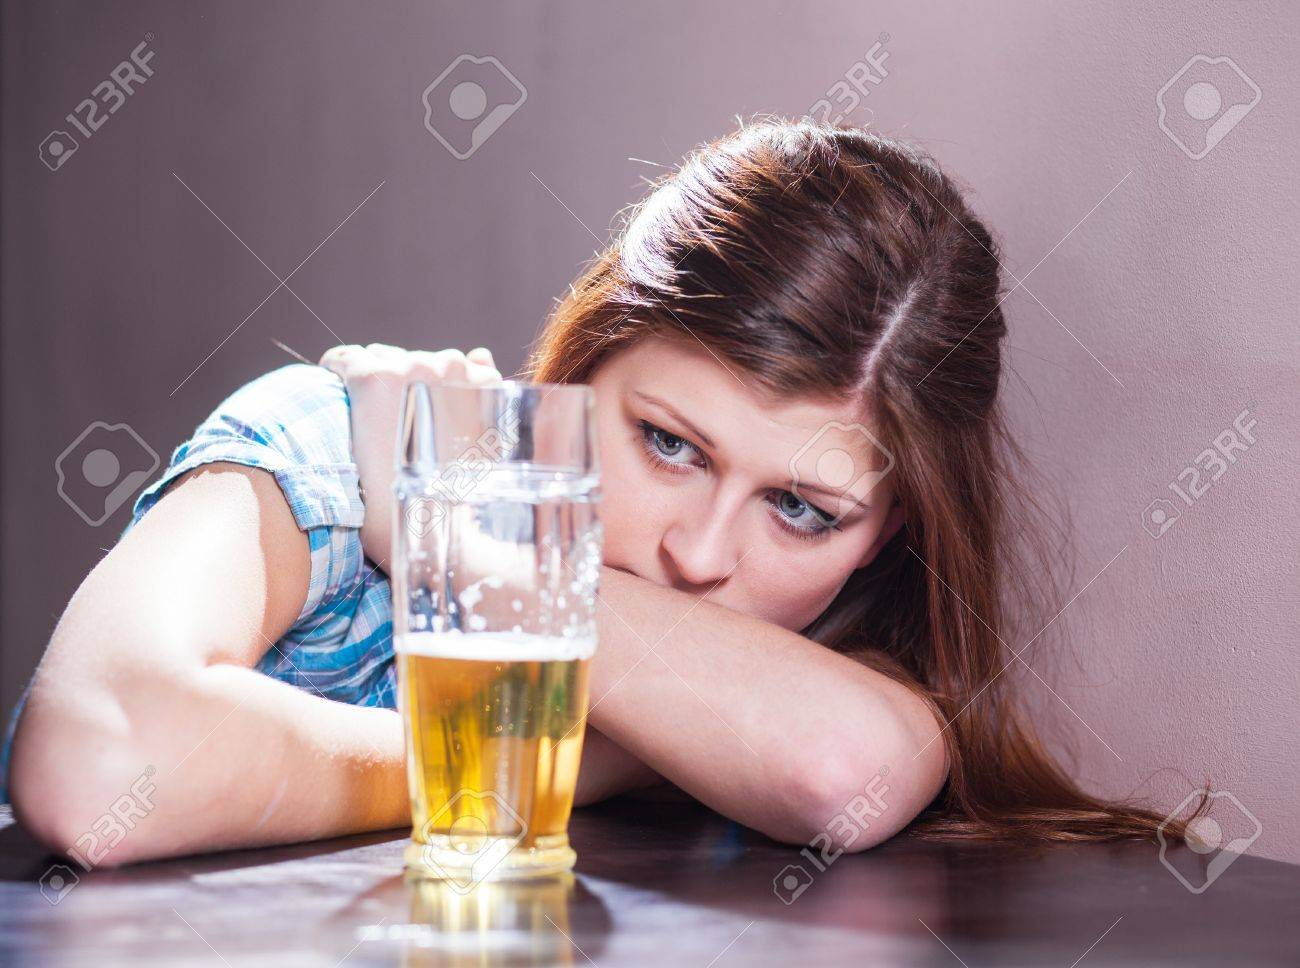 disgusting looking woman with a glass of beer Stock Photo - 17561163